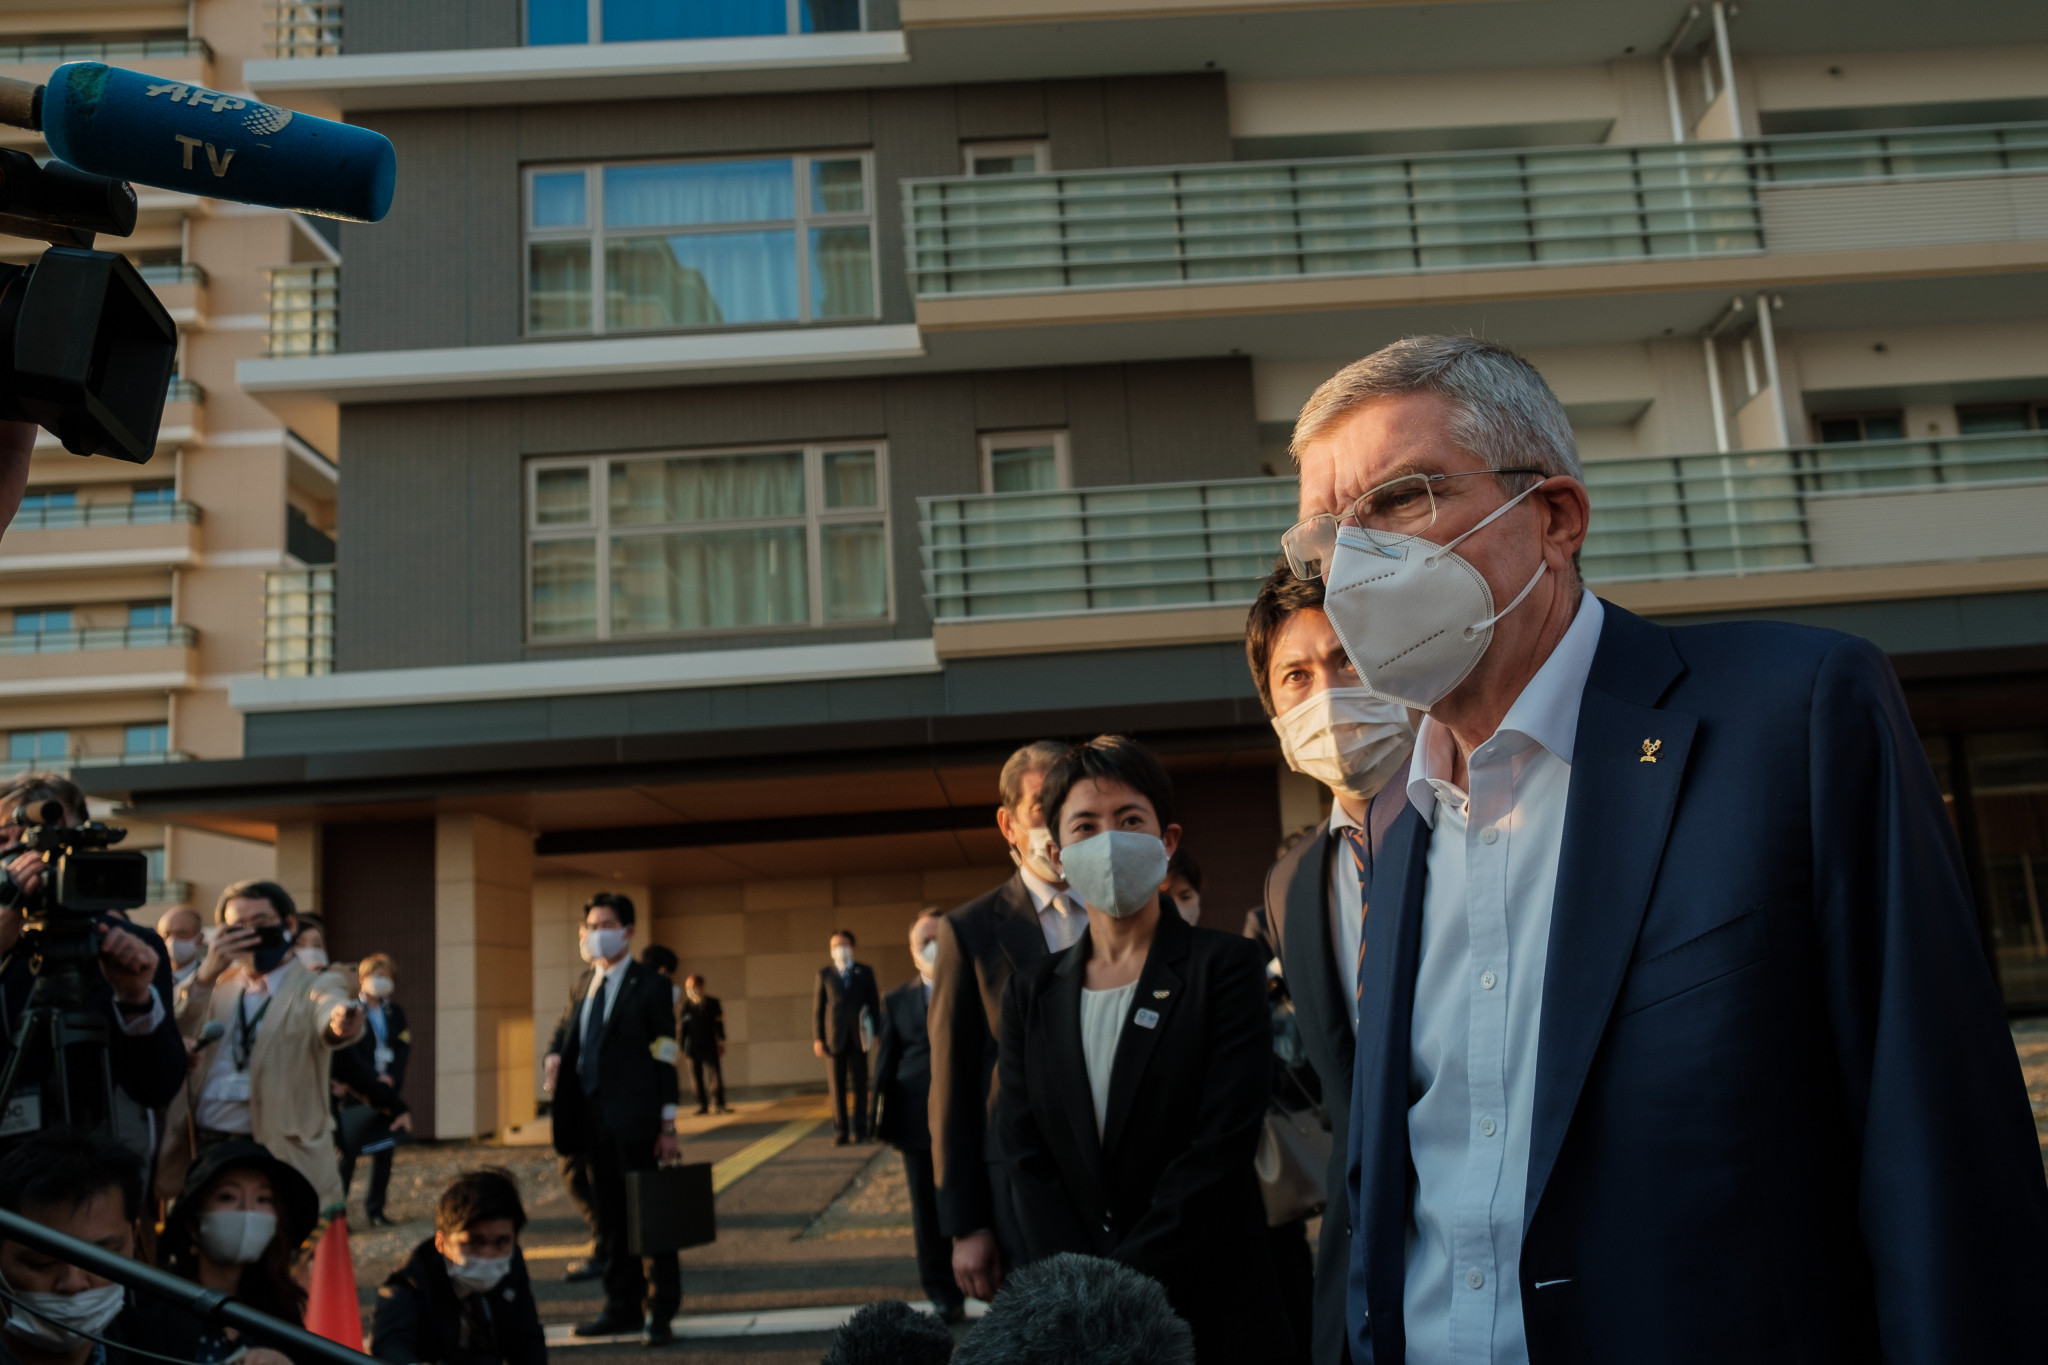 During his recent visit to Tokyo, IOC President Thomas Bach visited the Athletes' Village, where competitors will be encouraged to limit their stay during next year's Games ©Getty Images